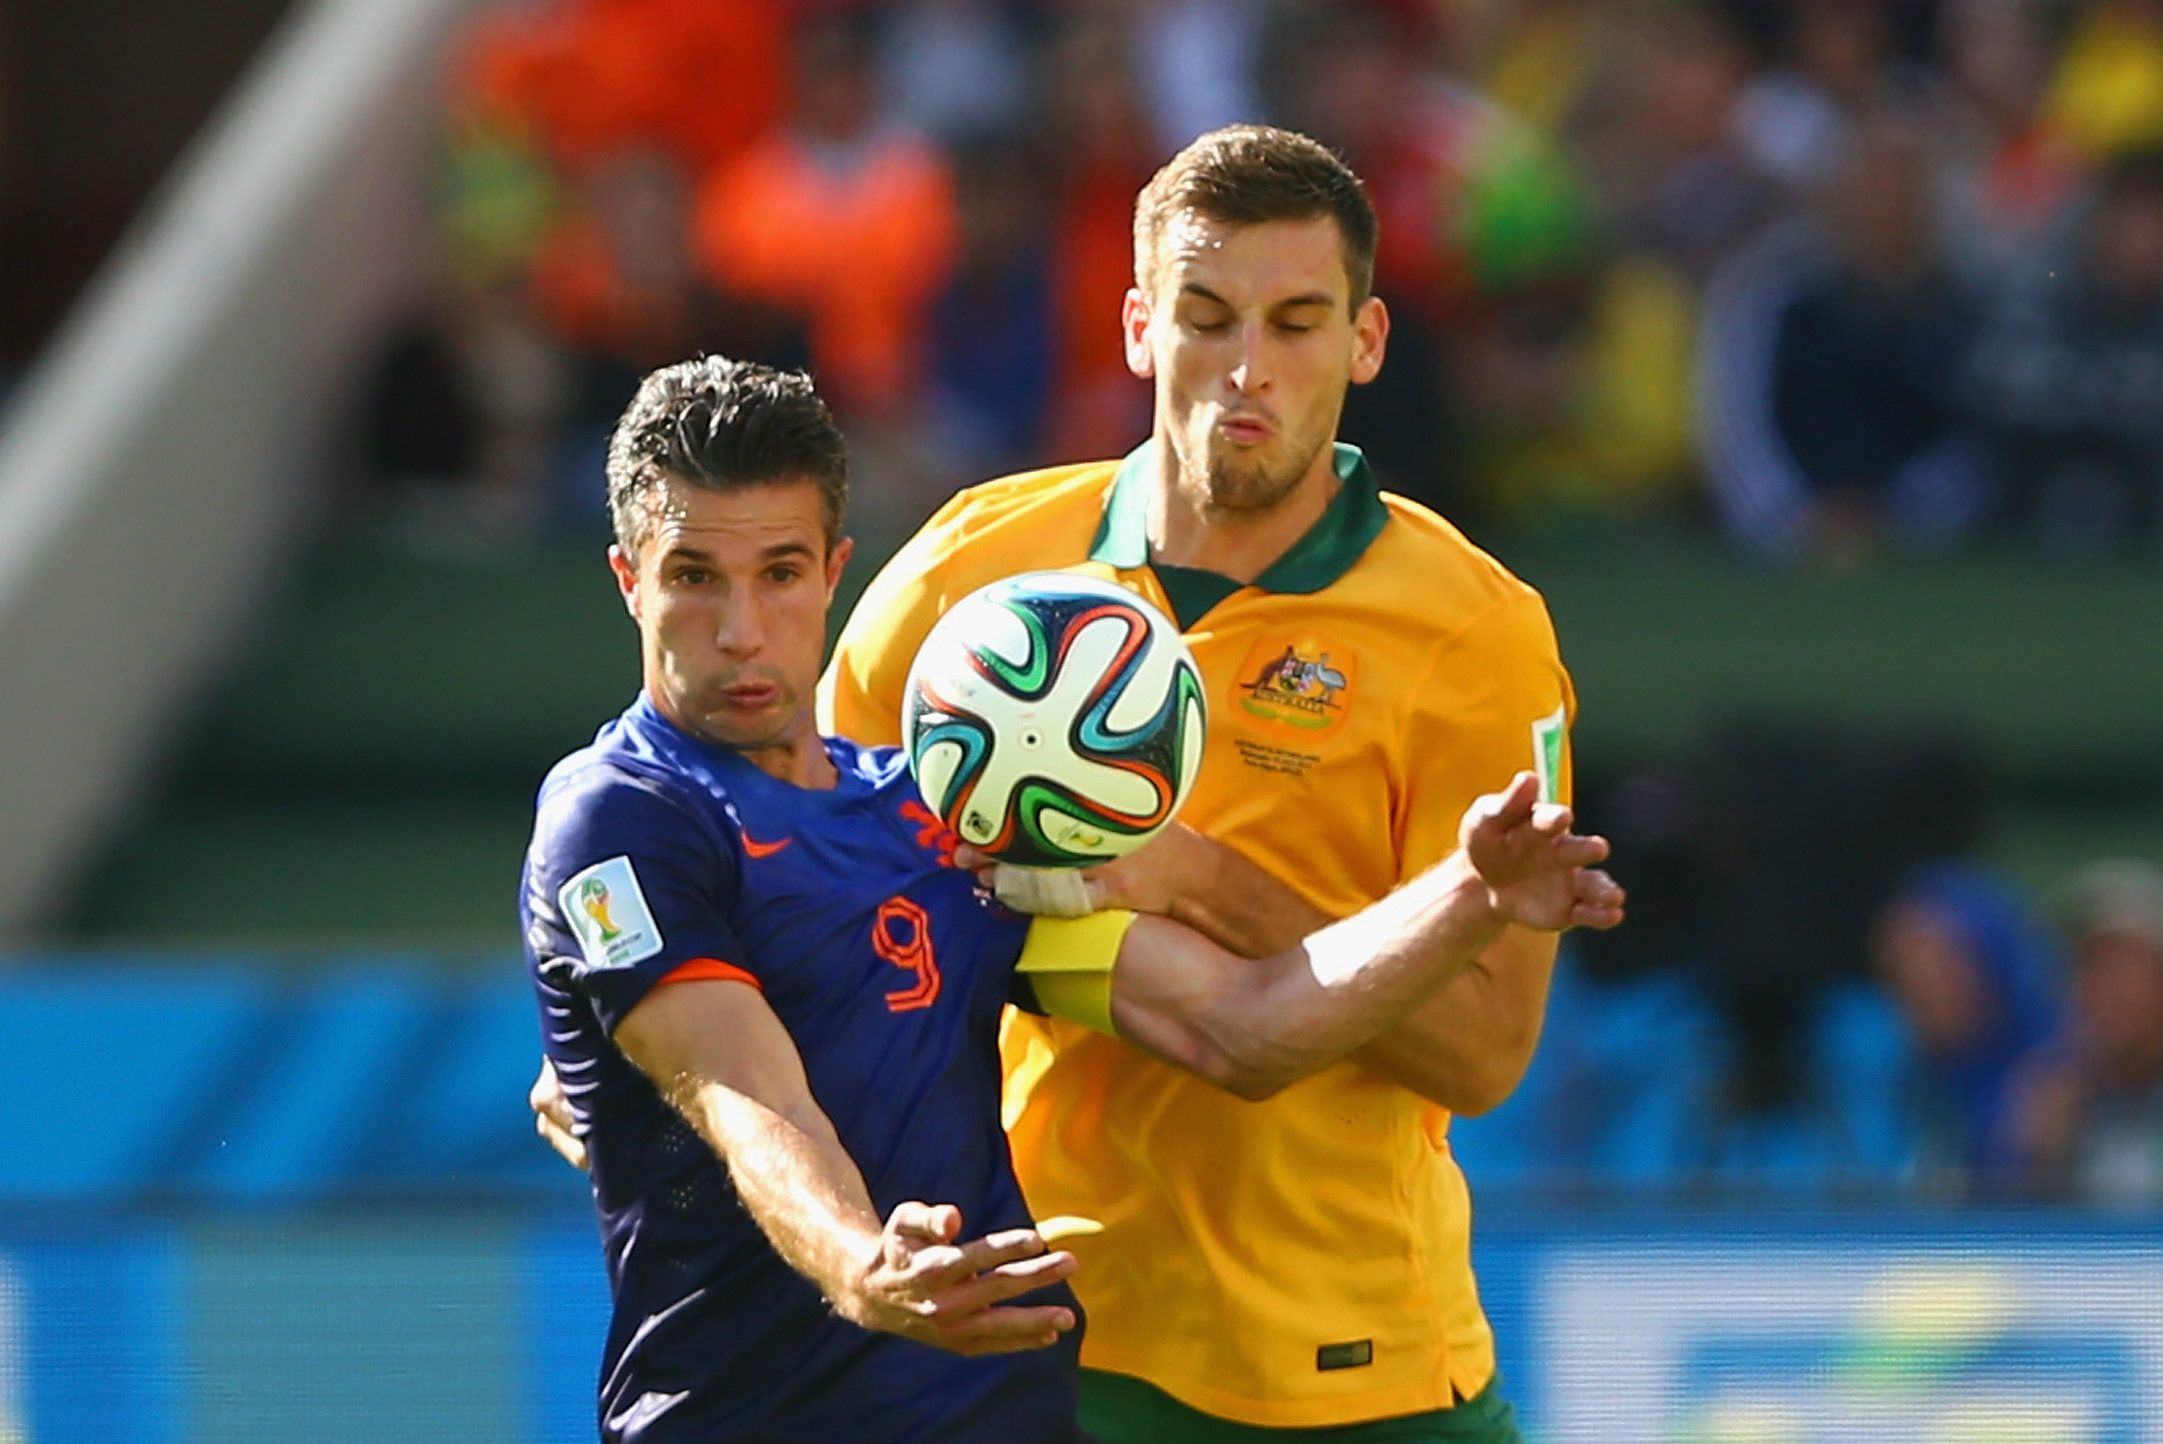 Spiranovic does battle with the Netherlands' Robin van Persie at the 2014 World Cup.